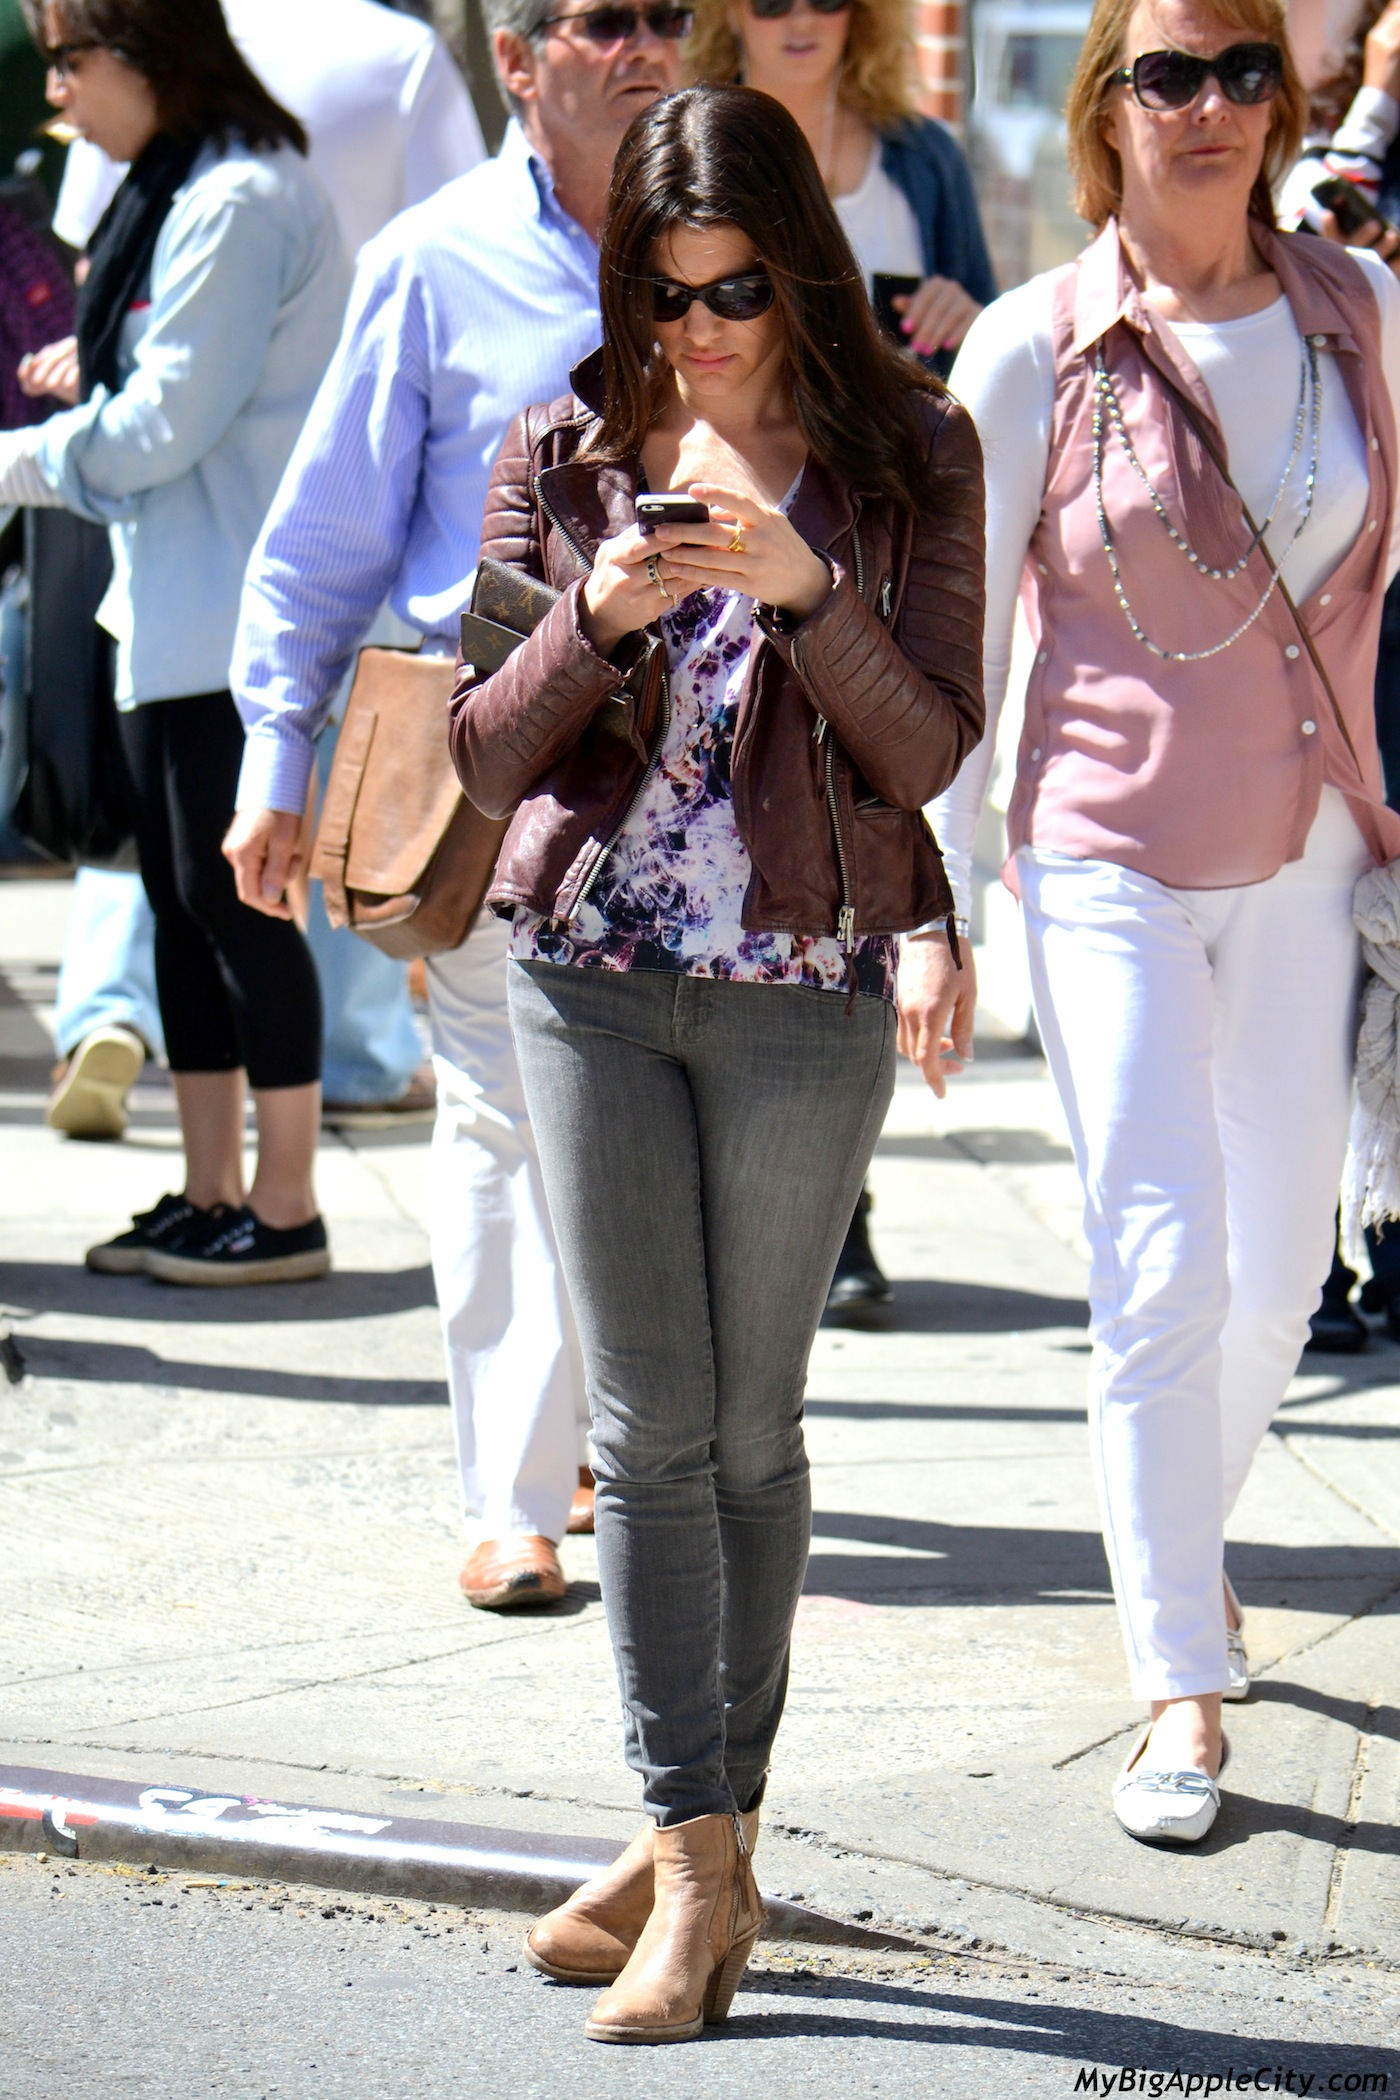 On-the-street-New-York-style-blog-MyBigAppleCity